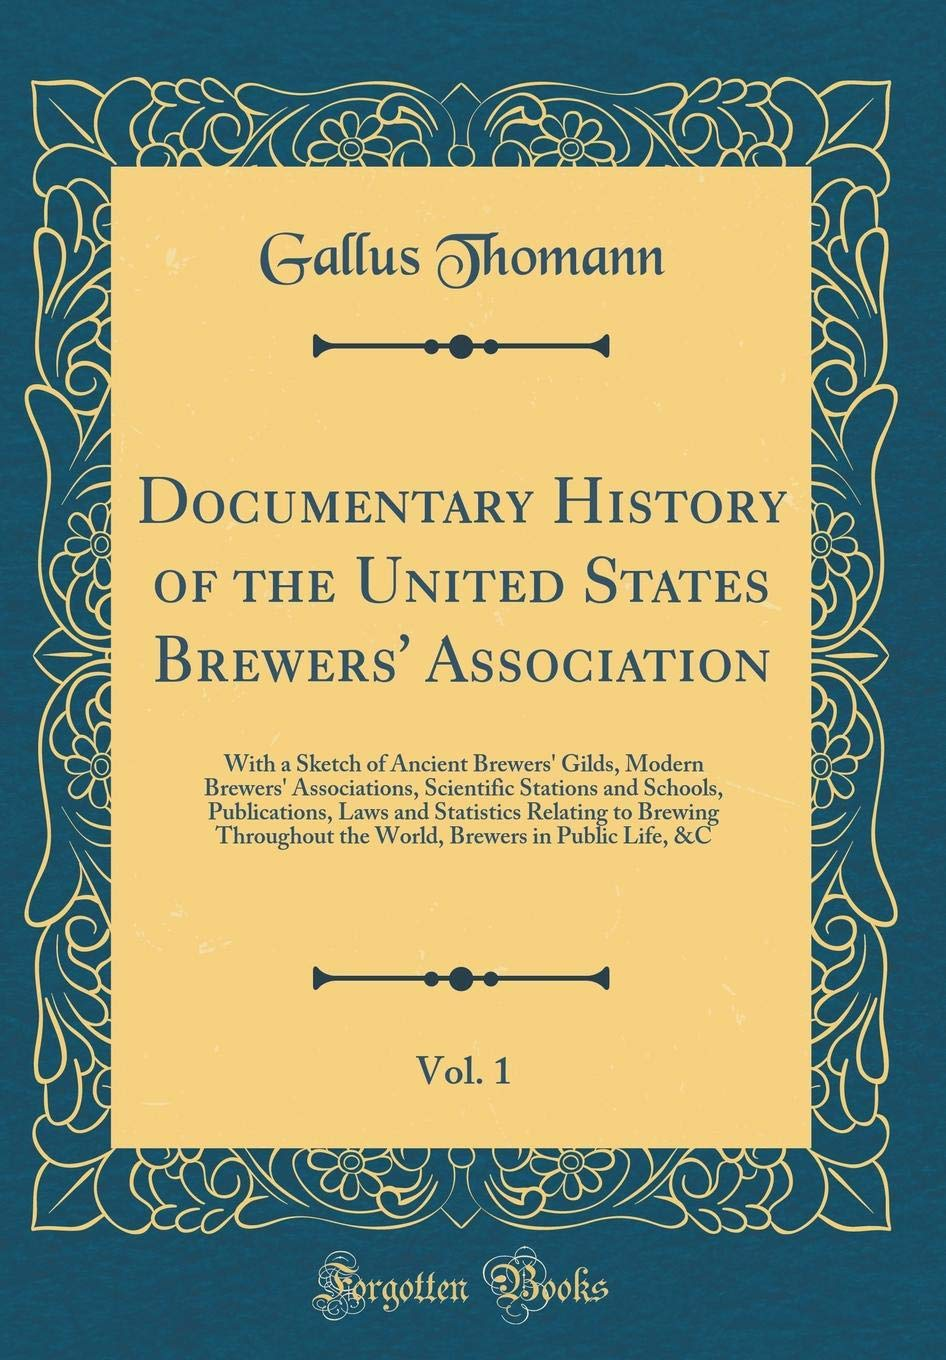 Documentary History of the United States Brewers